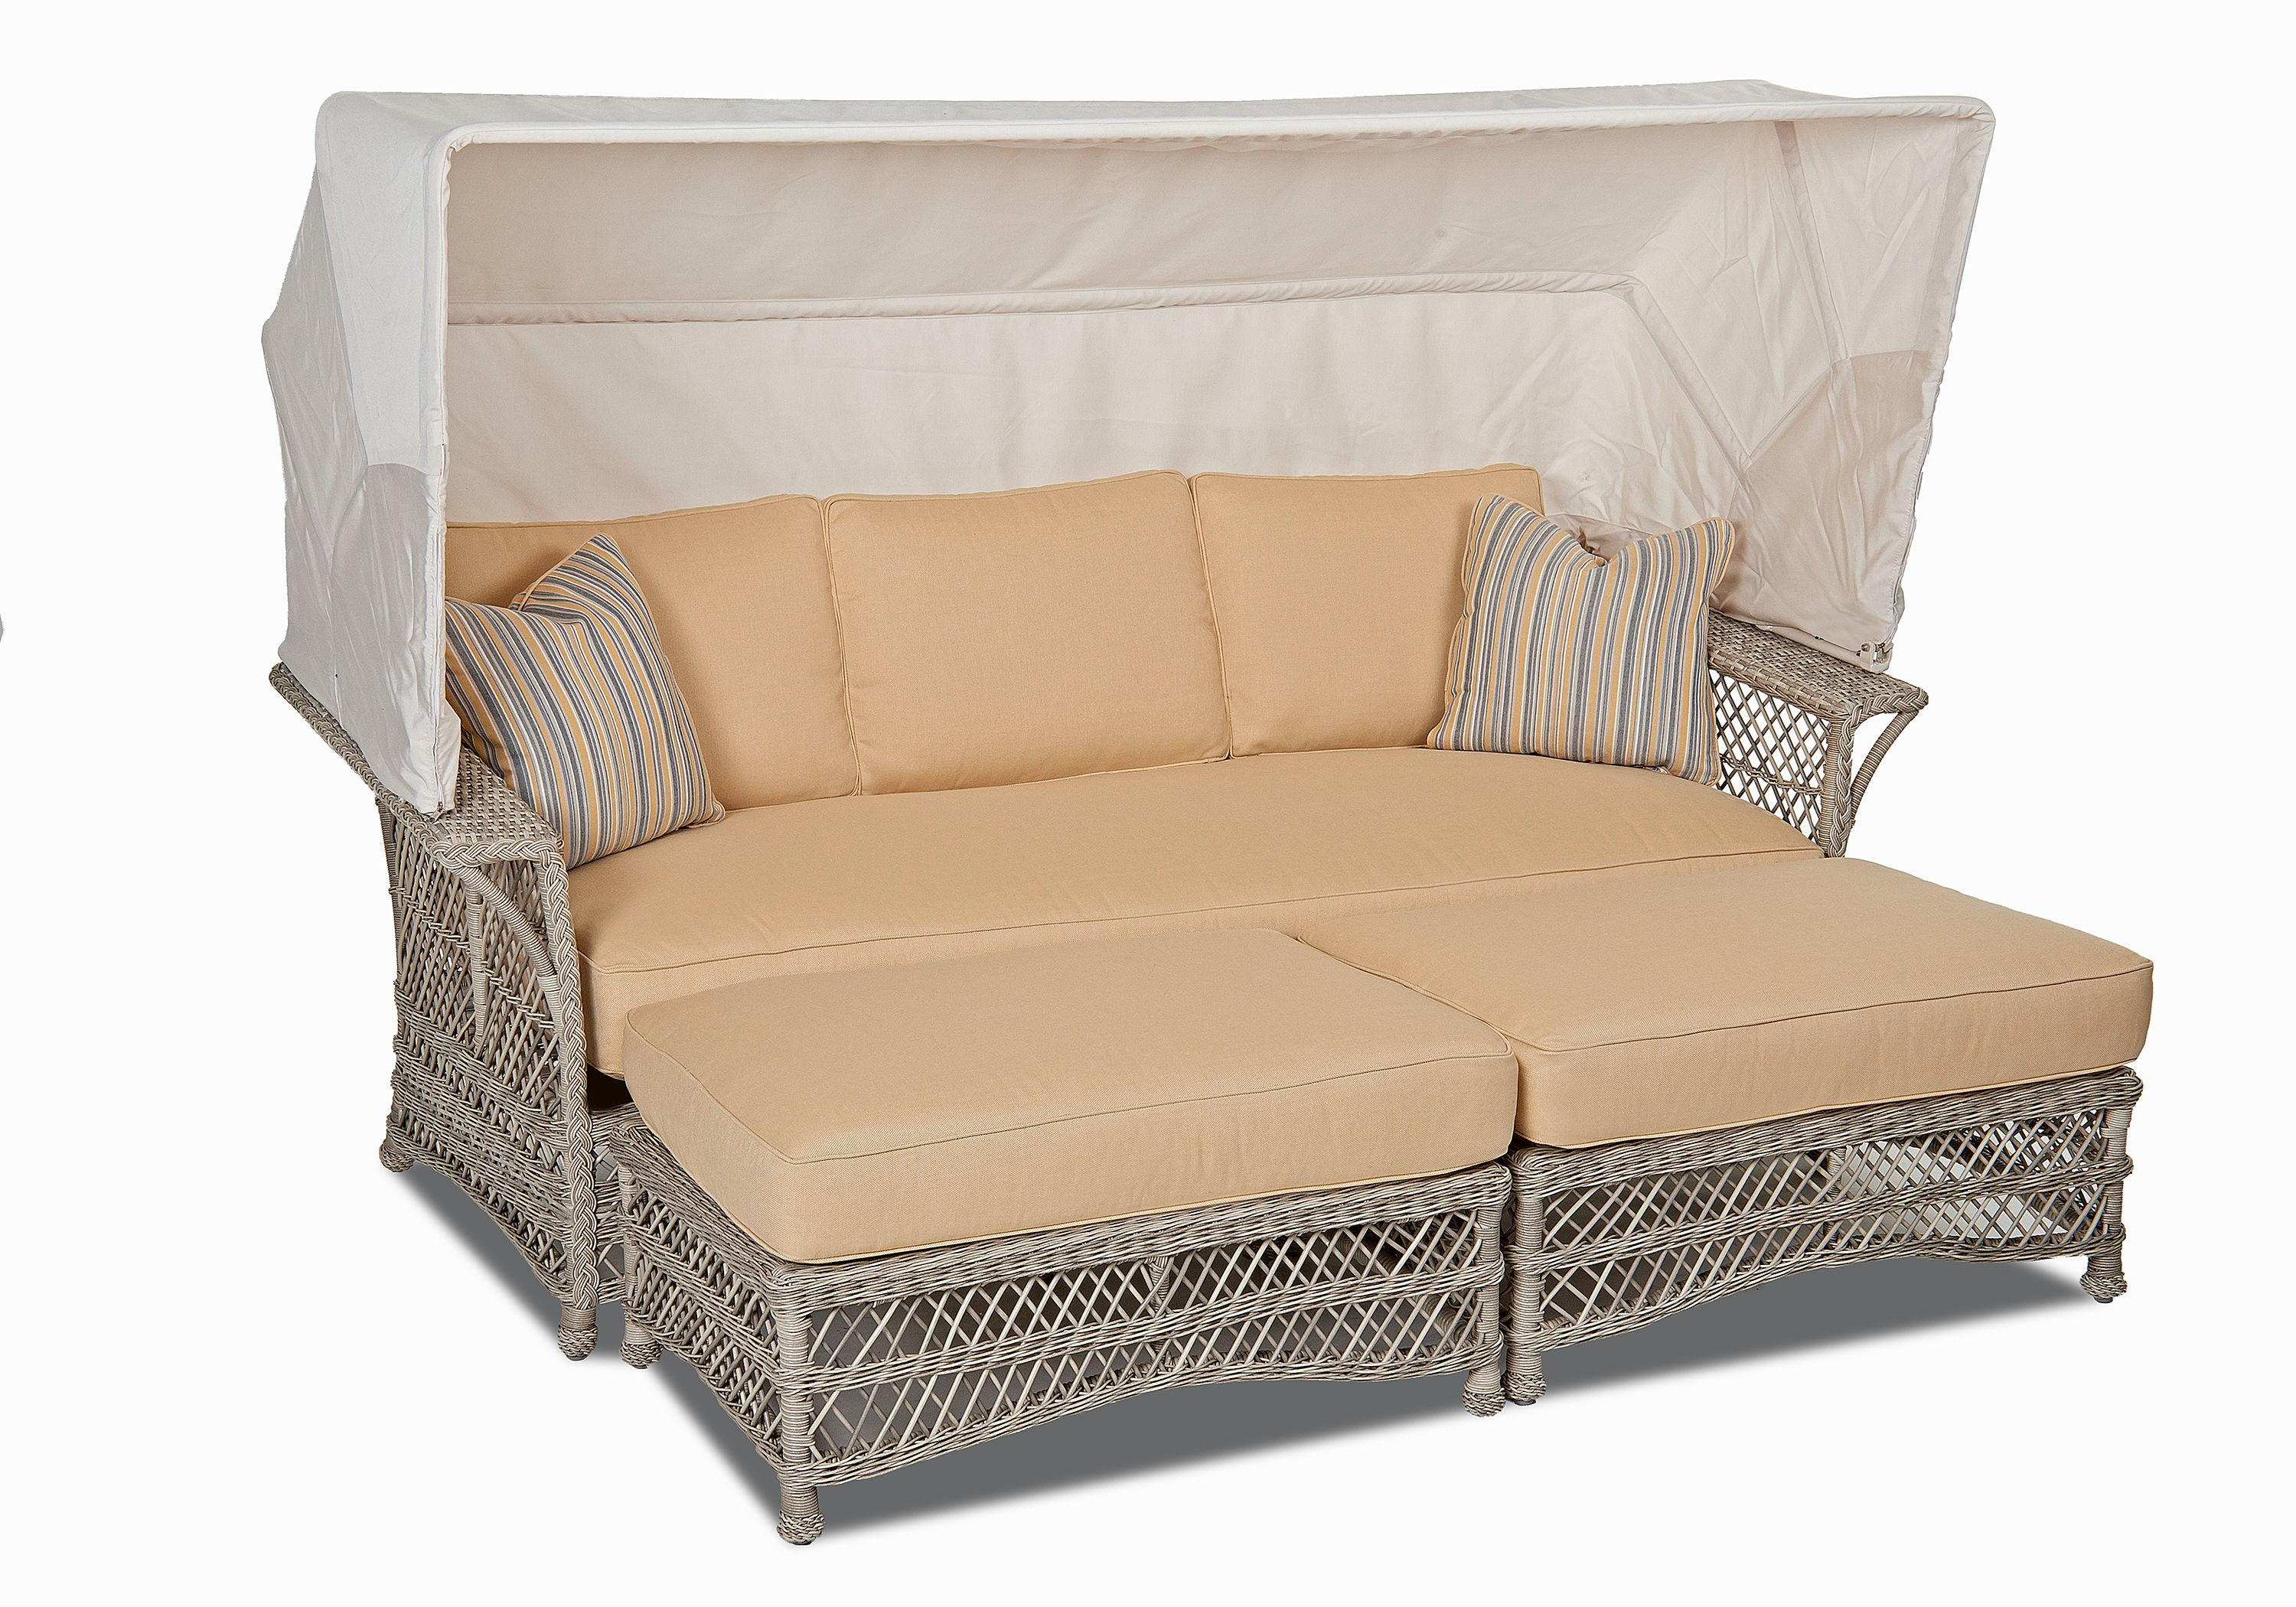 Delicieux Klaussner Outdoor Willow Daybed W1200 DAY